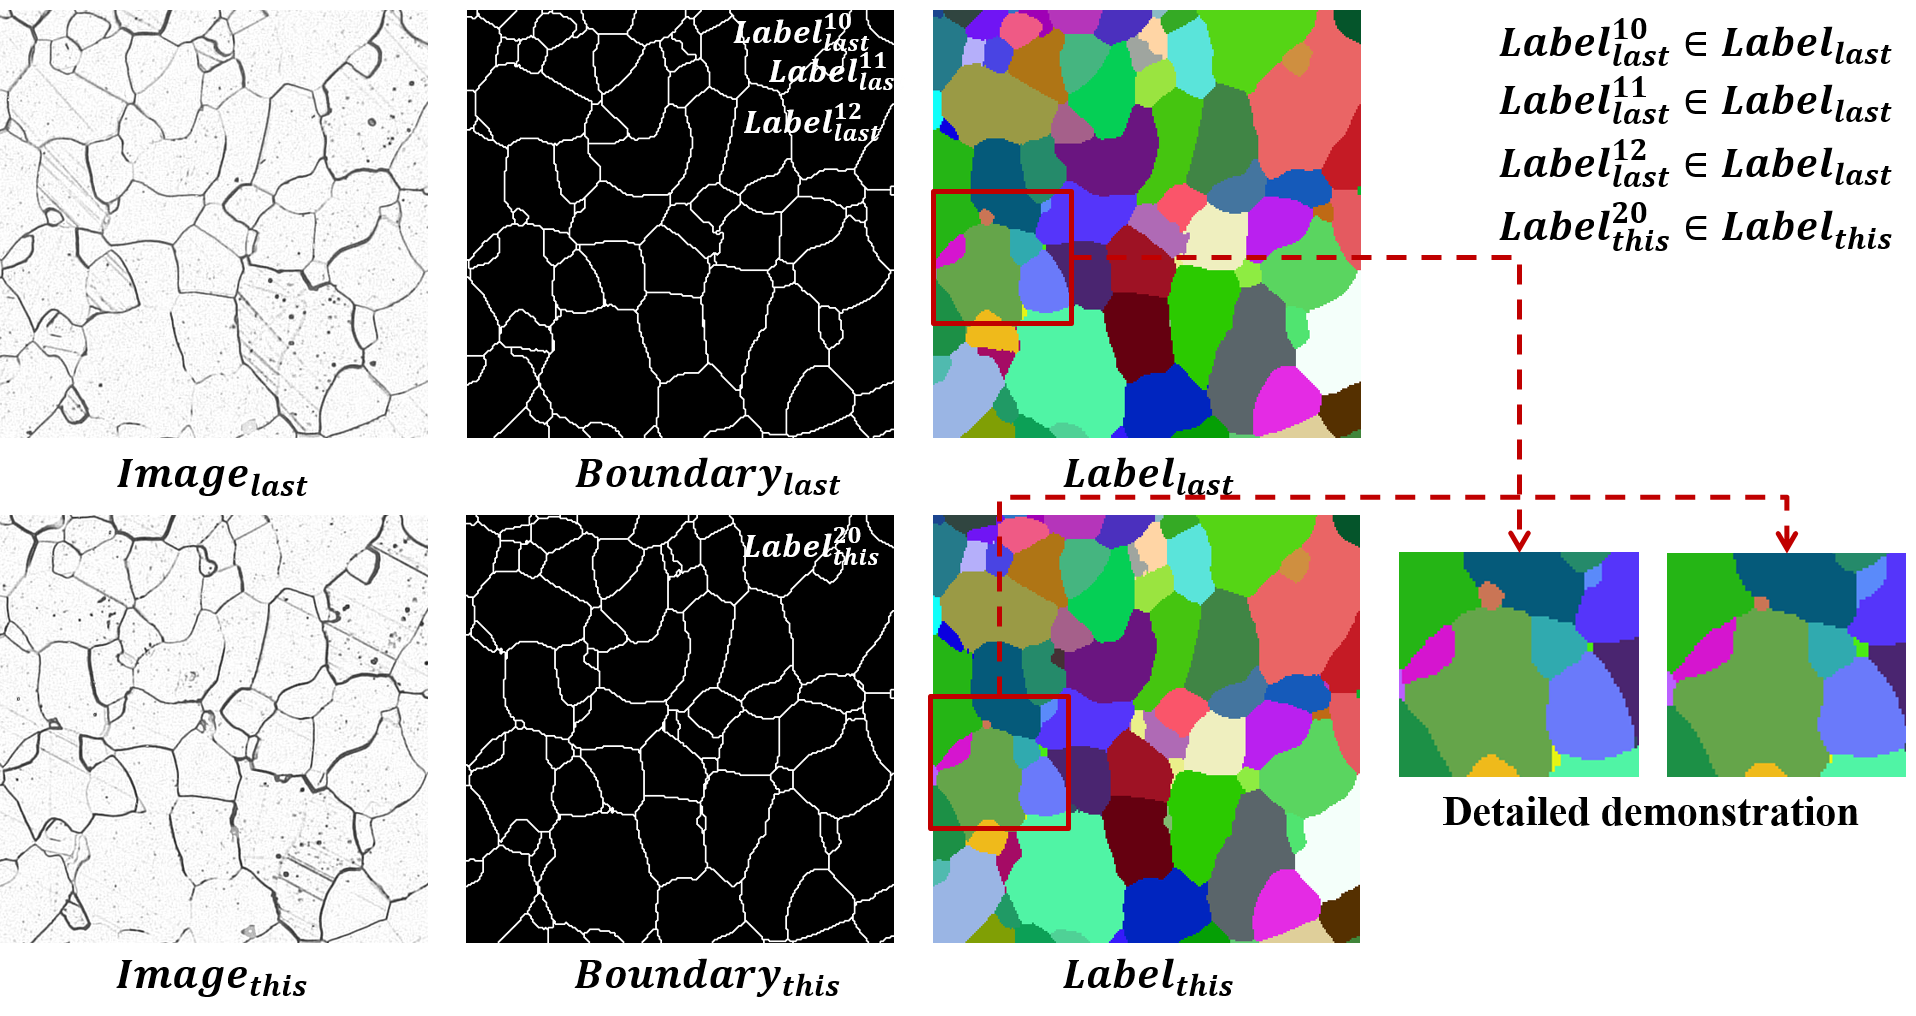 Tracking demonstration. The left column is raw images. The medium column is the boundary detection result. We need to track each grain between two neighbor slices and transform boundary result to label result. In label result, each grain region is given to a unique label and a certain color to visualize.